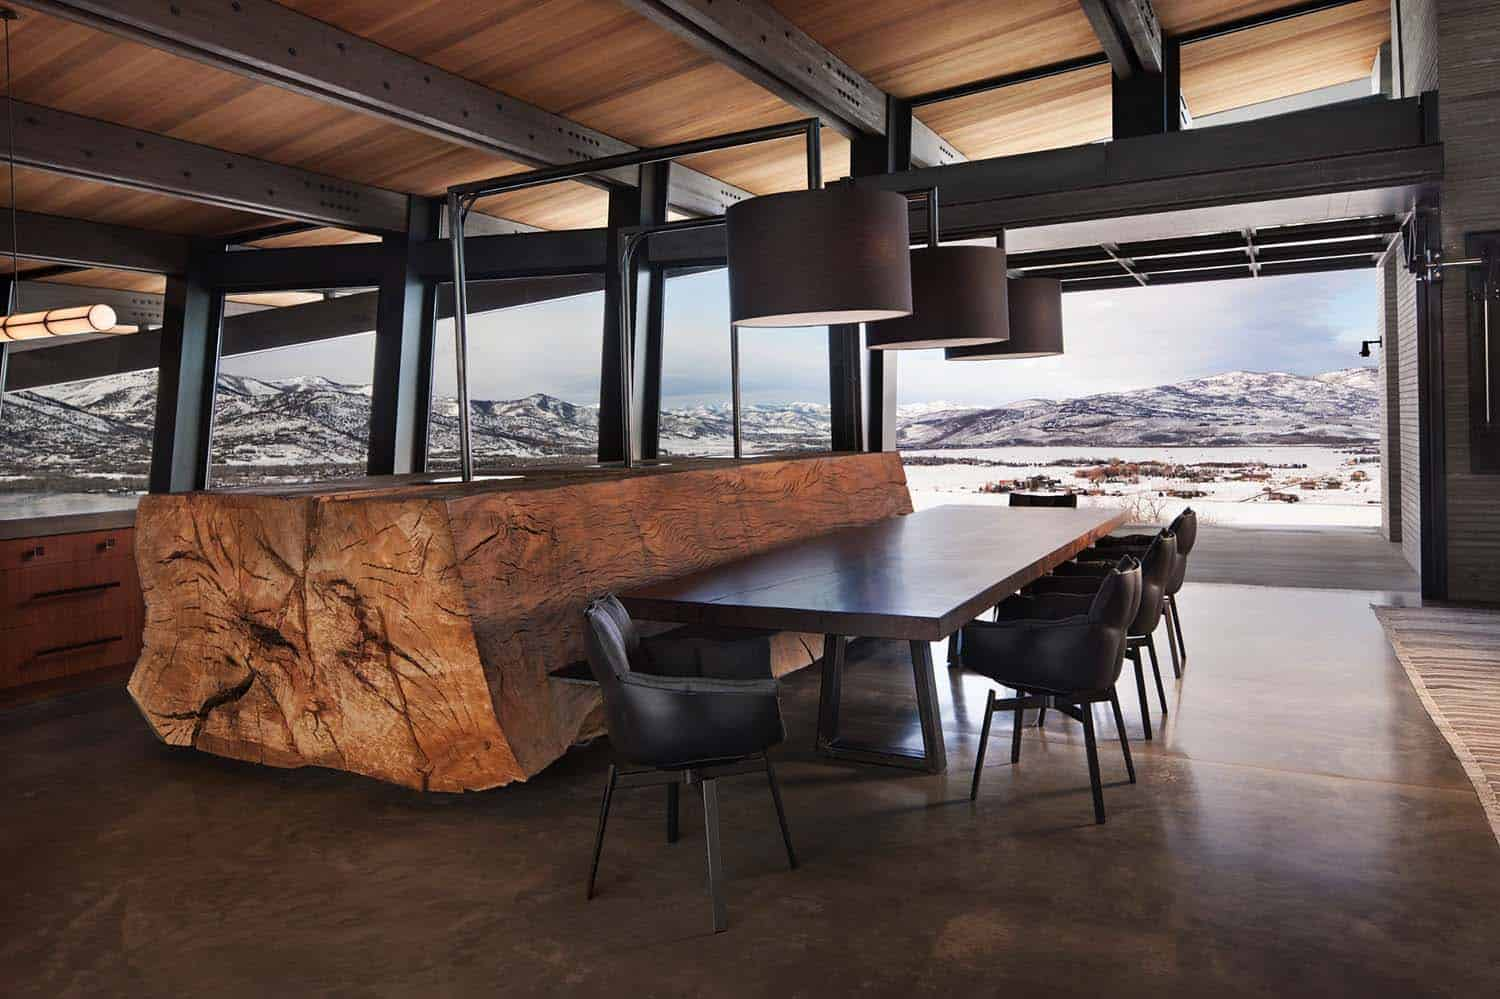 Contemporary Mountain Residence-RKD Architects-02-1 Kindesign